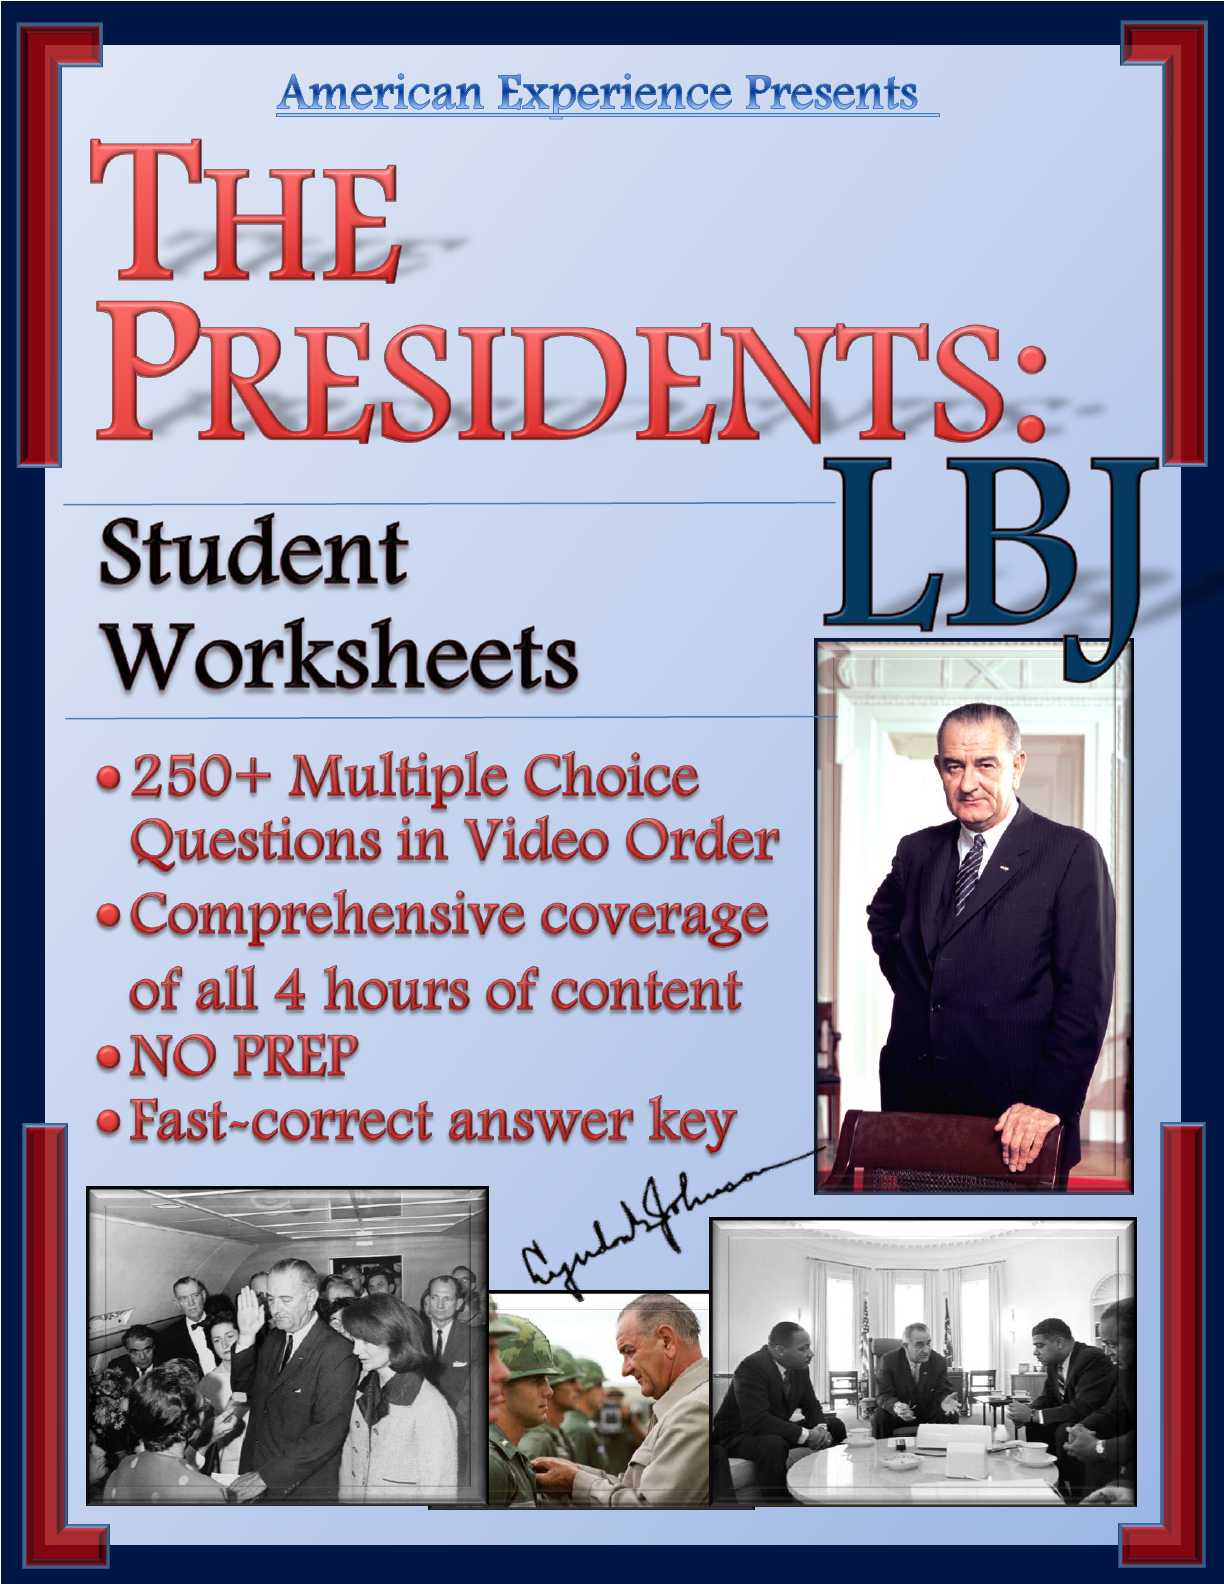 hight resolution of American Experience LBJ Worksheets Help Students Master the 1960s! More  than 250 Multiple Choice Questions…   Social studies lesson